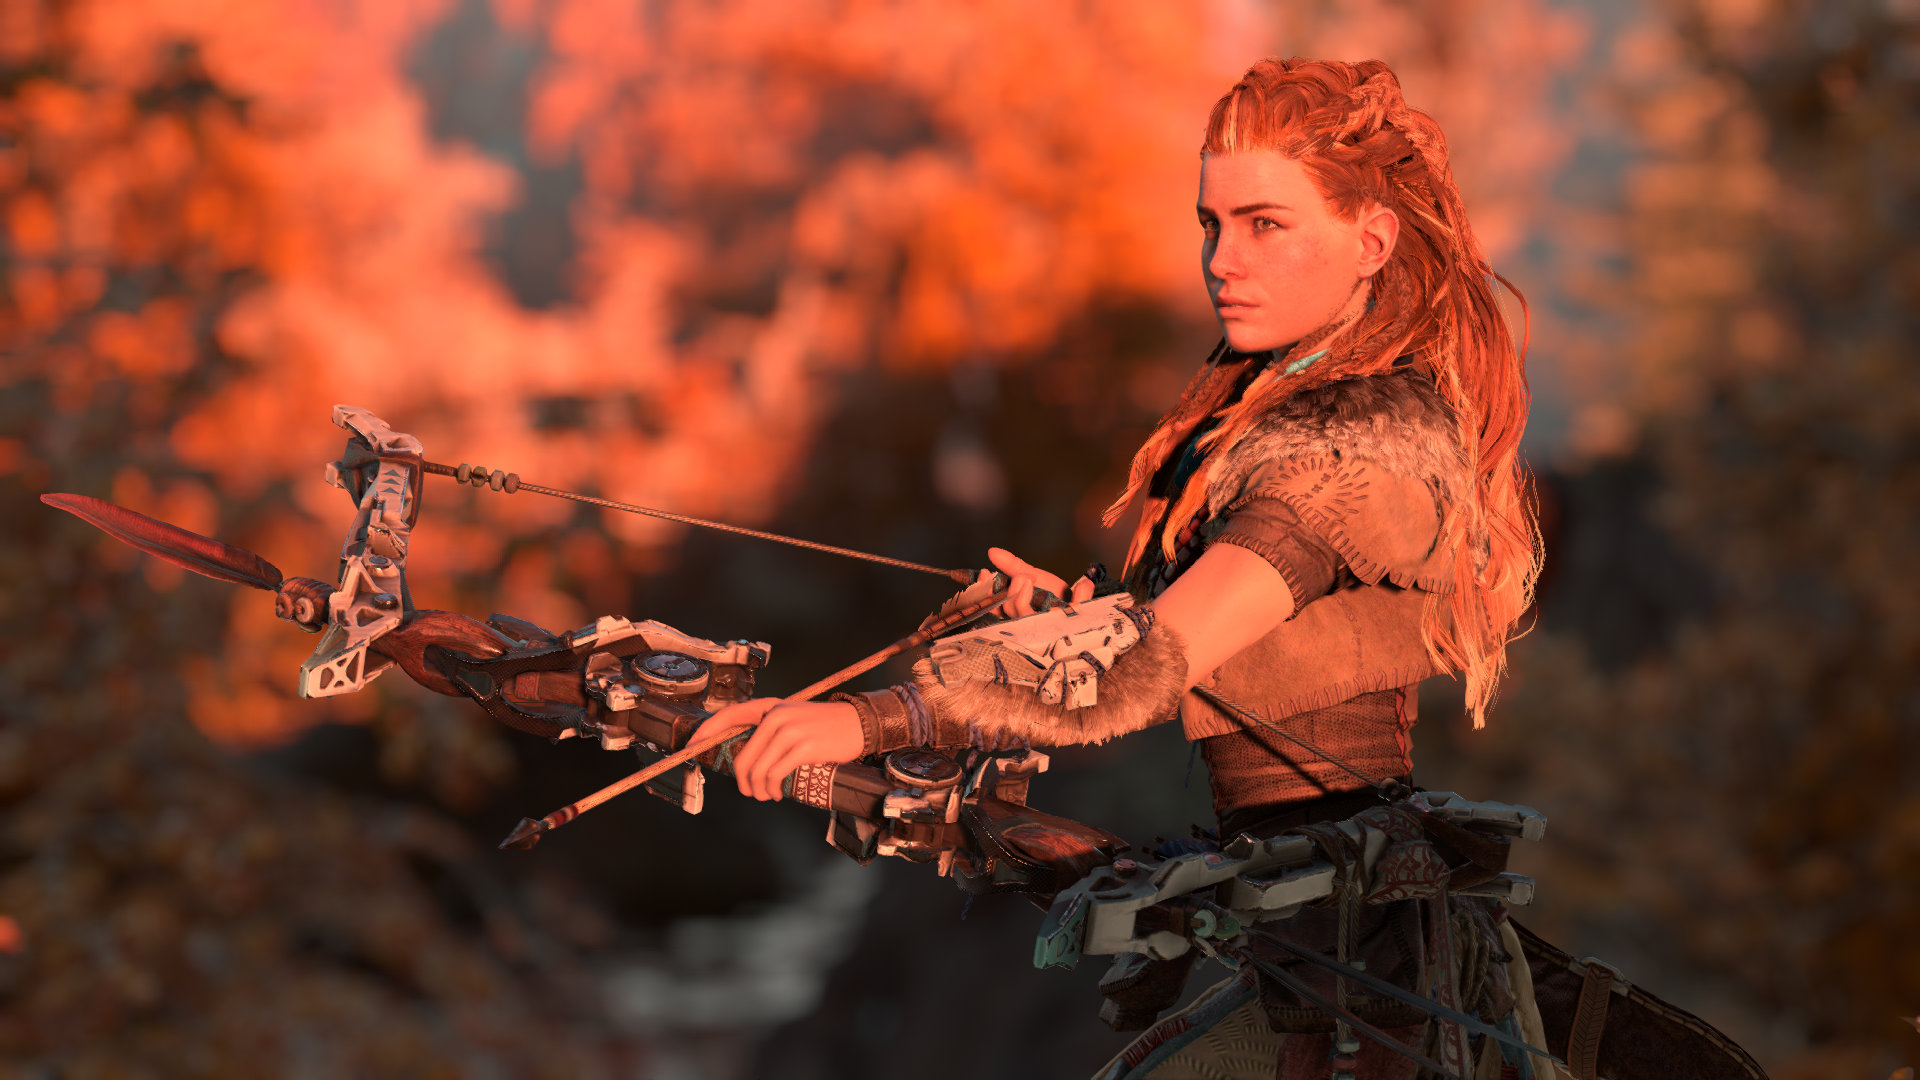 Report: PS4 exclusive Horizon Zero Dawn coming to PC